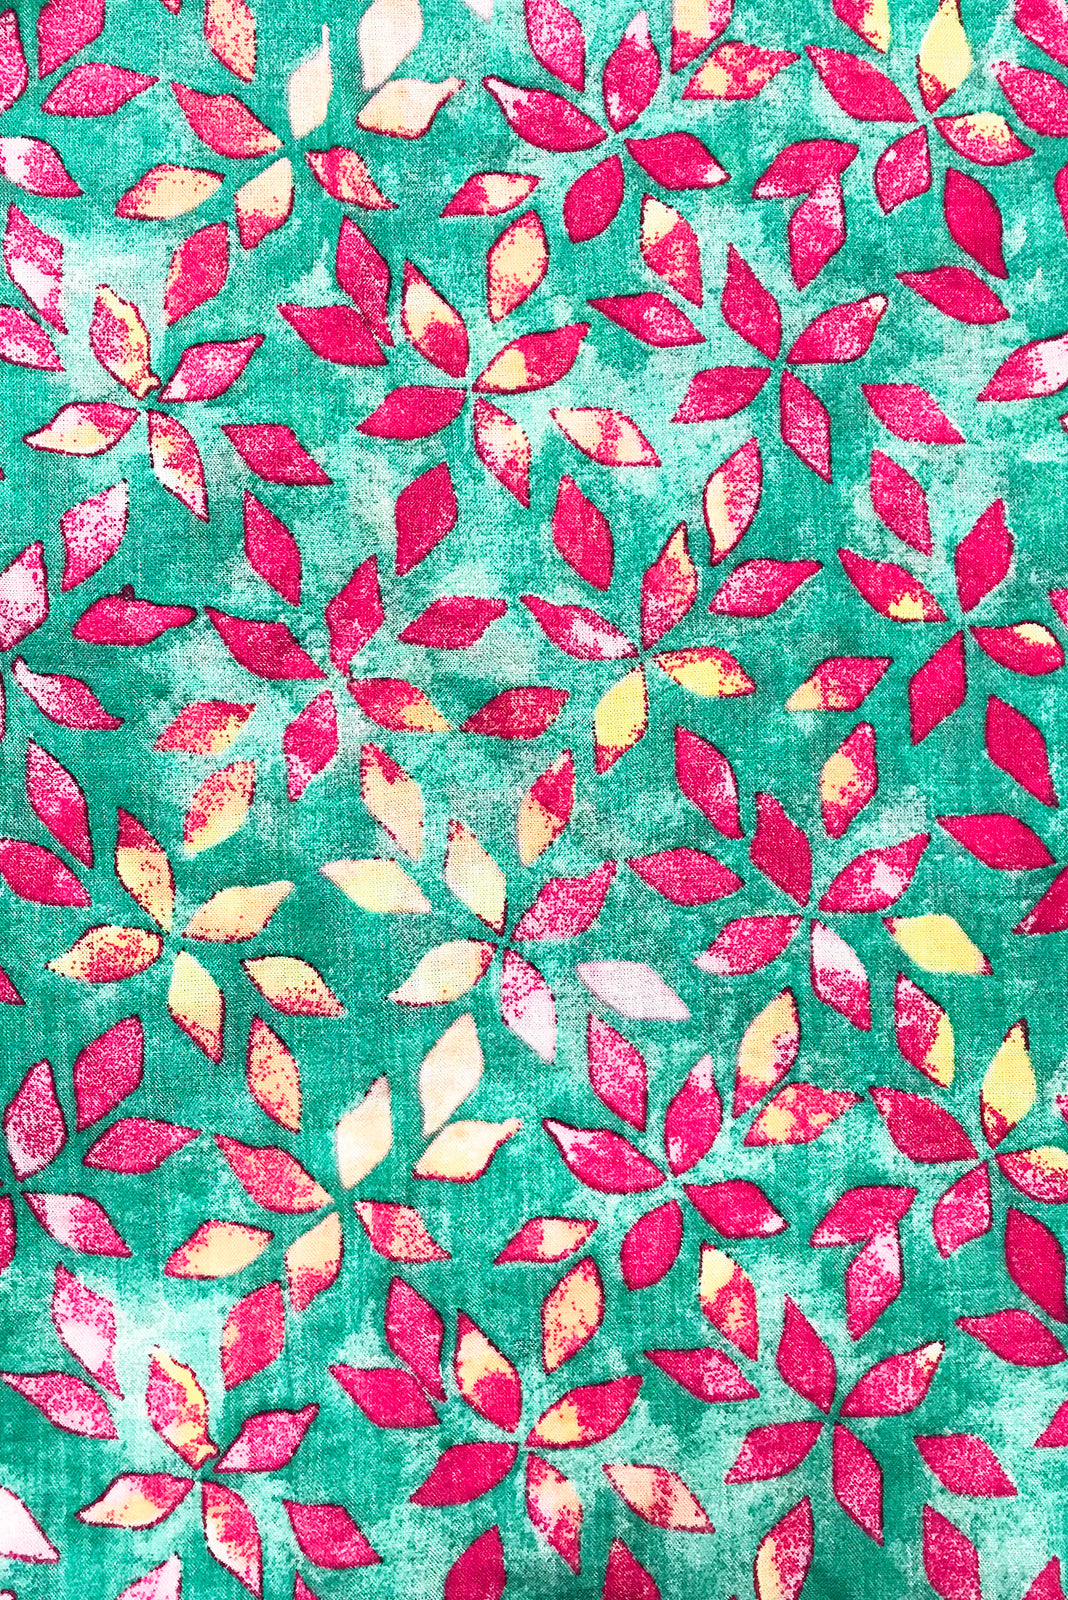 Fabric Swatch of Lucky Lulu Green Fields Maxi Dress features woven 100% Rayon in Seafoam green base covered with pink and yellow petals.